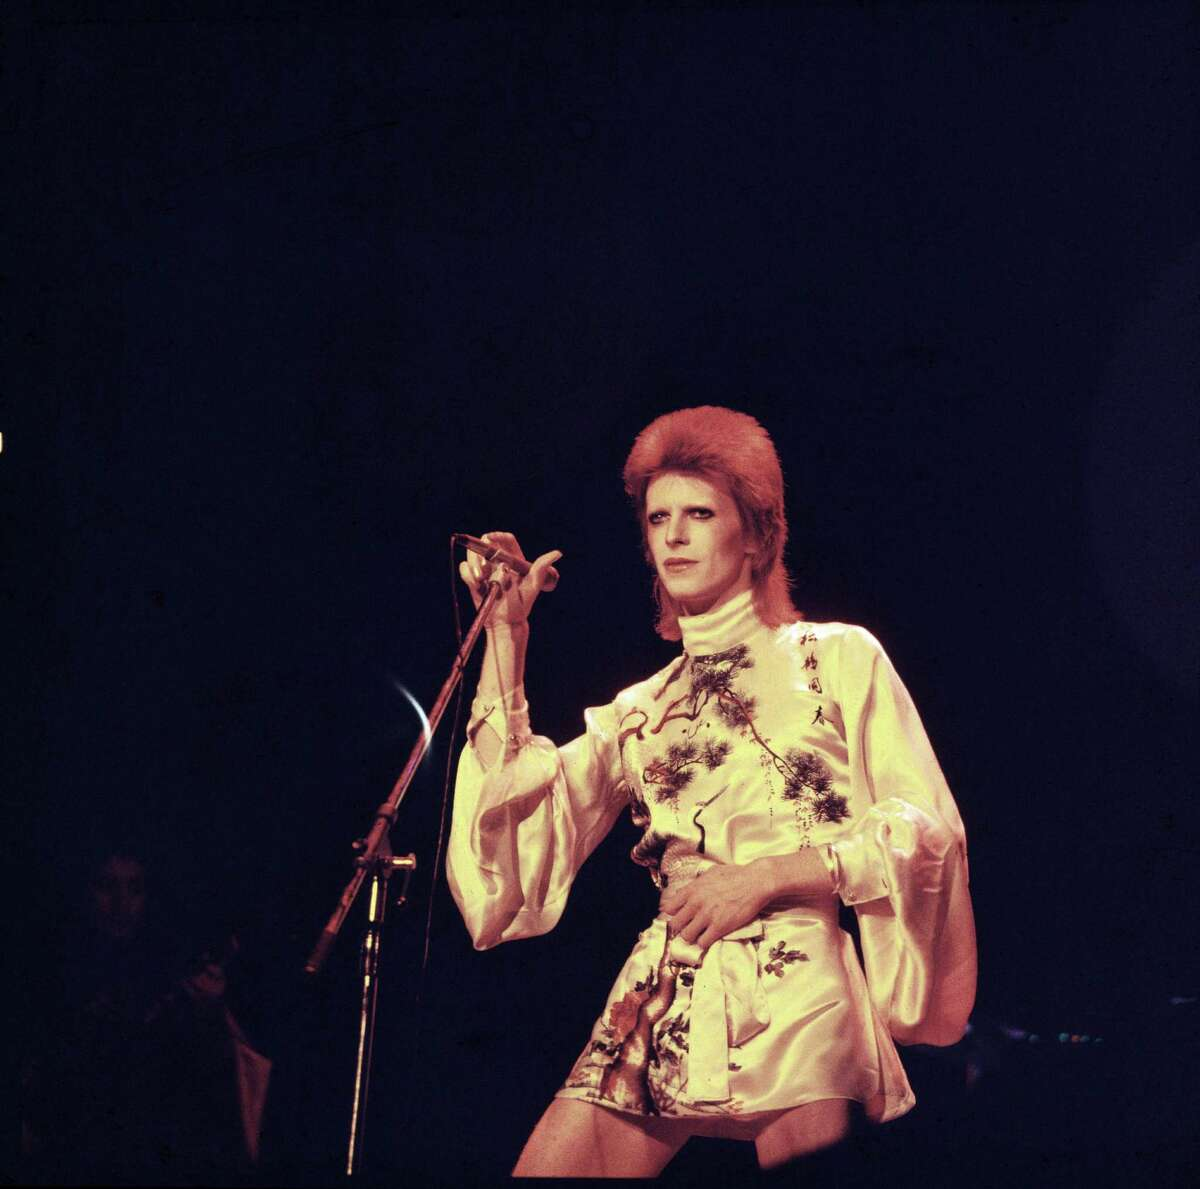 Houston's Top Trending Searches, No. 4: David Bowie. The rocker was the first major death of what would become a slew of beloved celebrities in 2016.